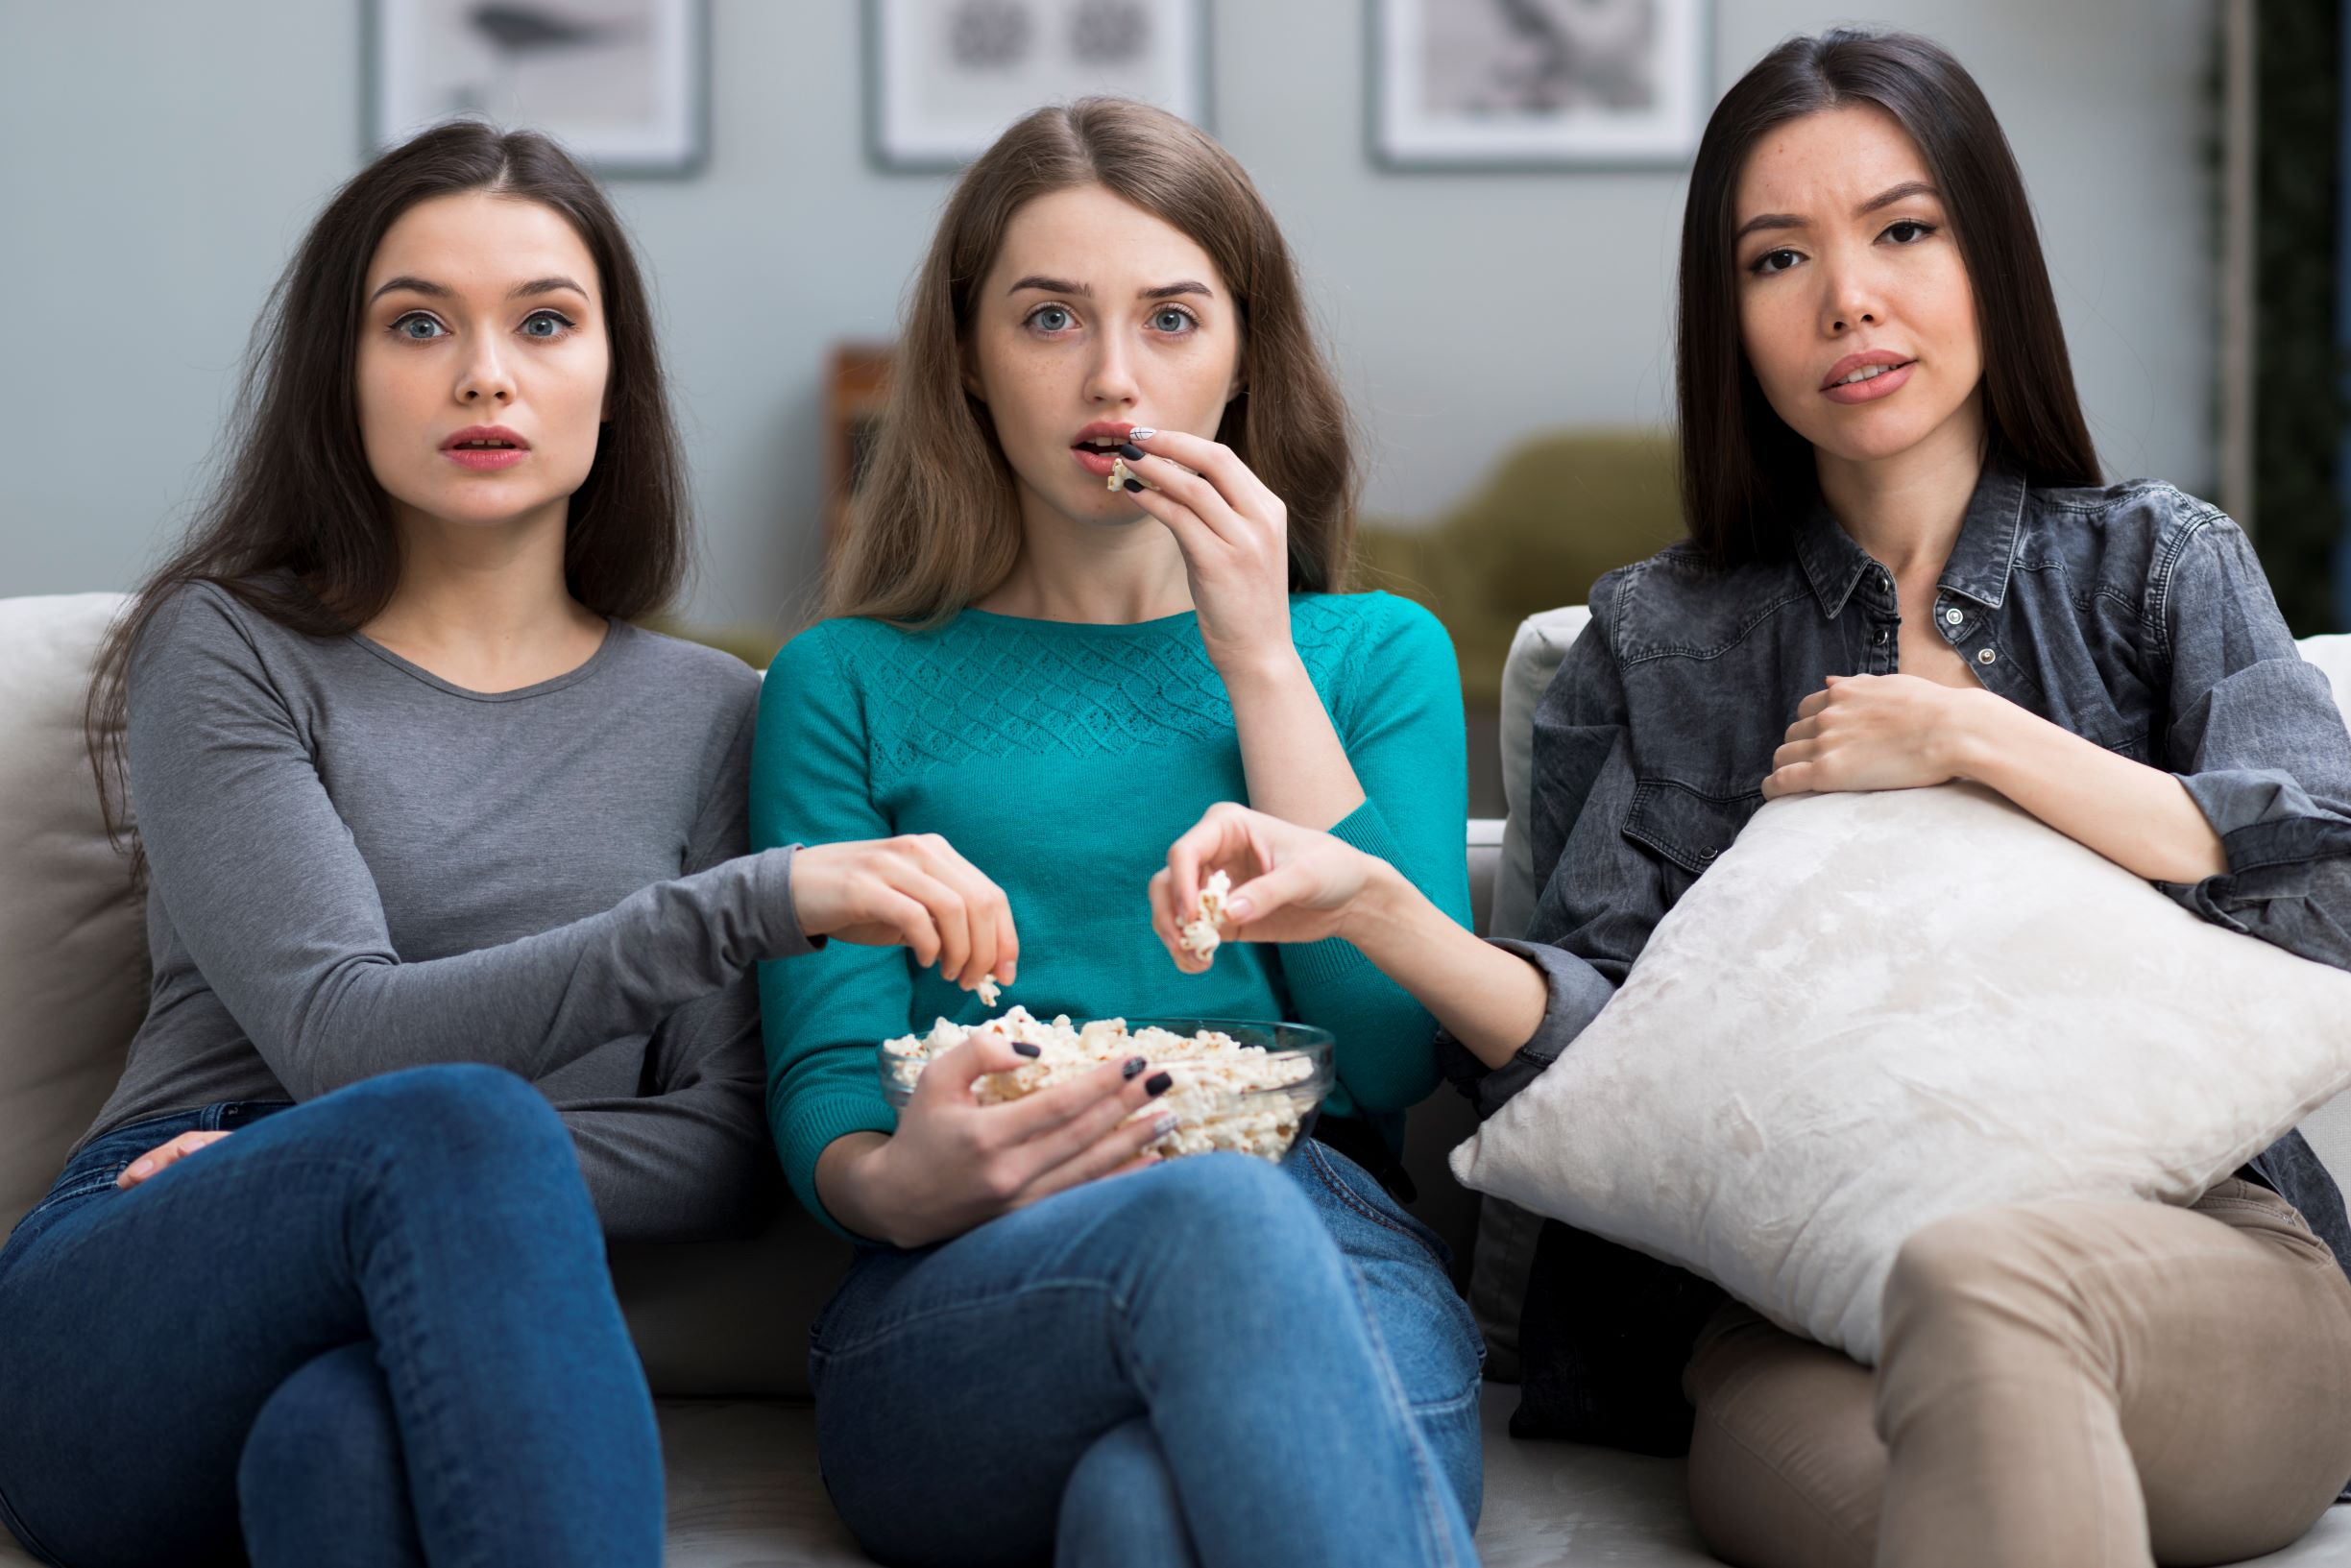 Tech-Gift-Guide-Group-of-adult-women-watching-movie.jpg